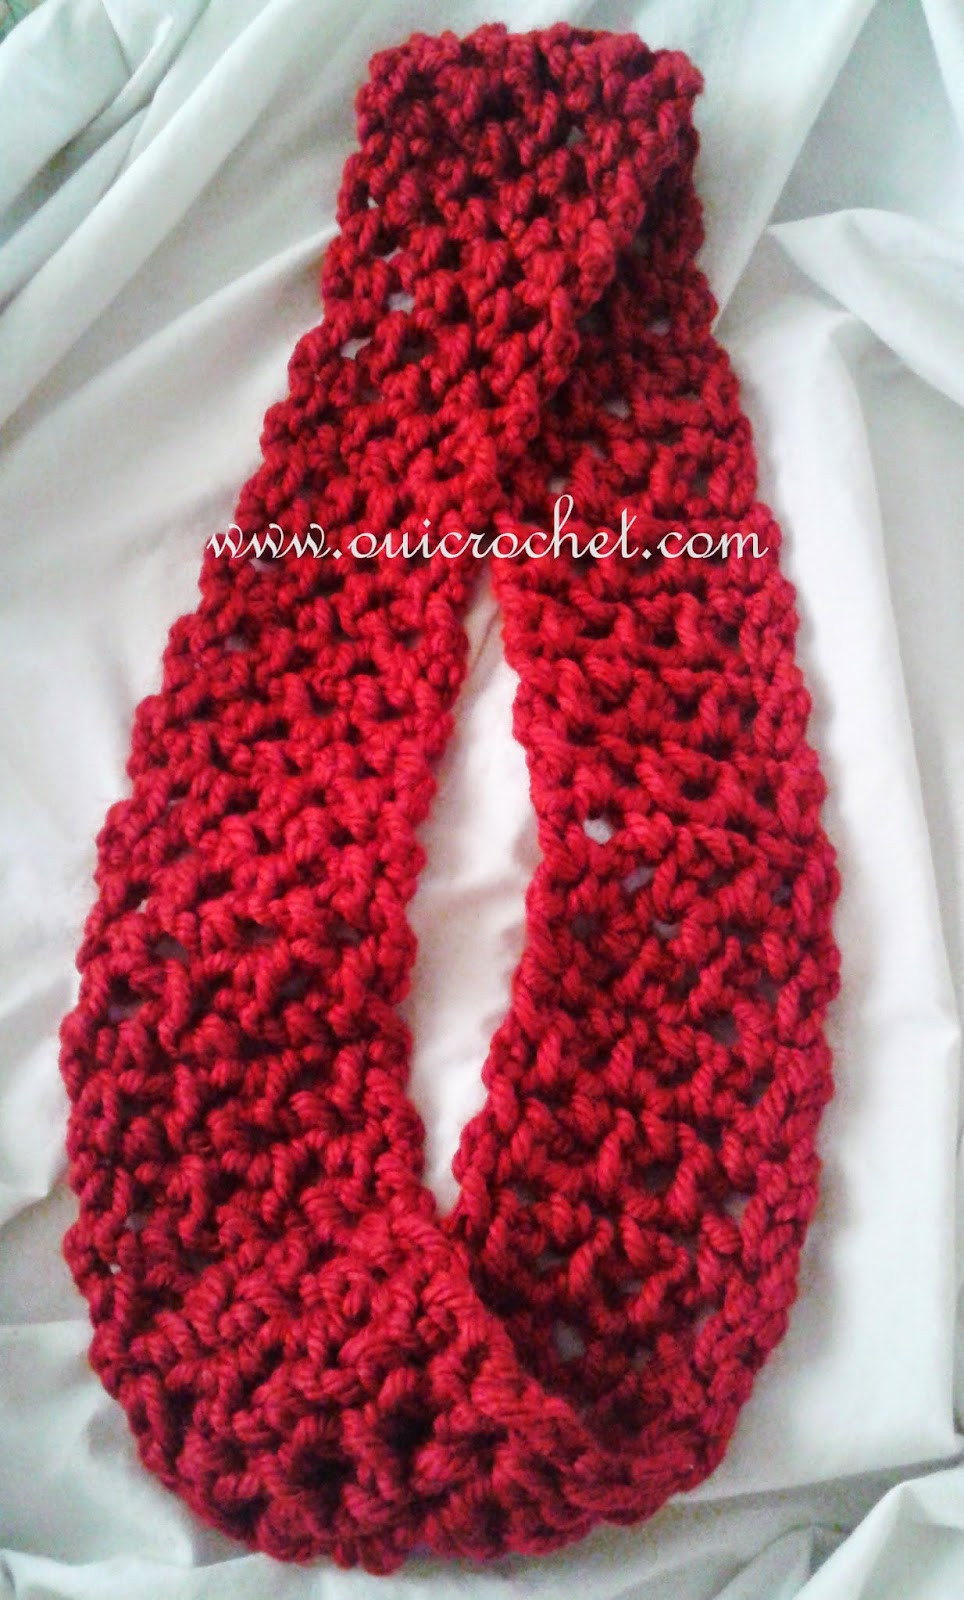 Quick and Easy Crochet Lovely Oui Crochet Quick Infinity Scarf Free Crochet Pattern Of Incredible 48 Pics Quick and Easy Crochet